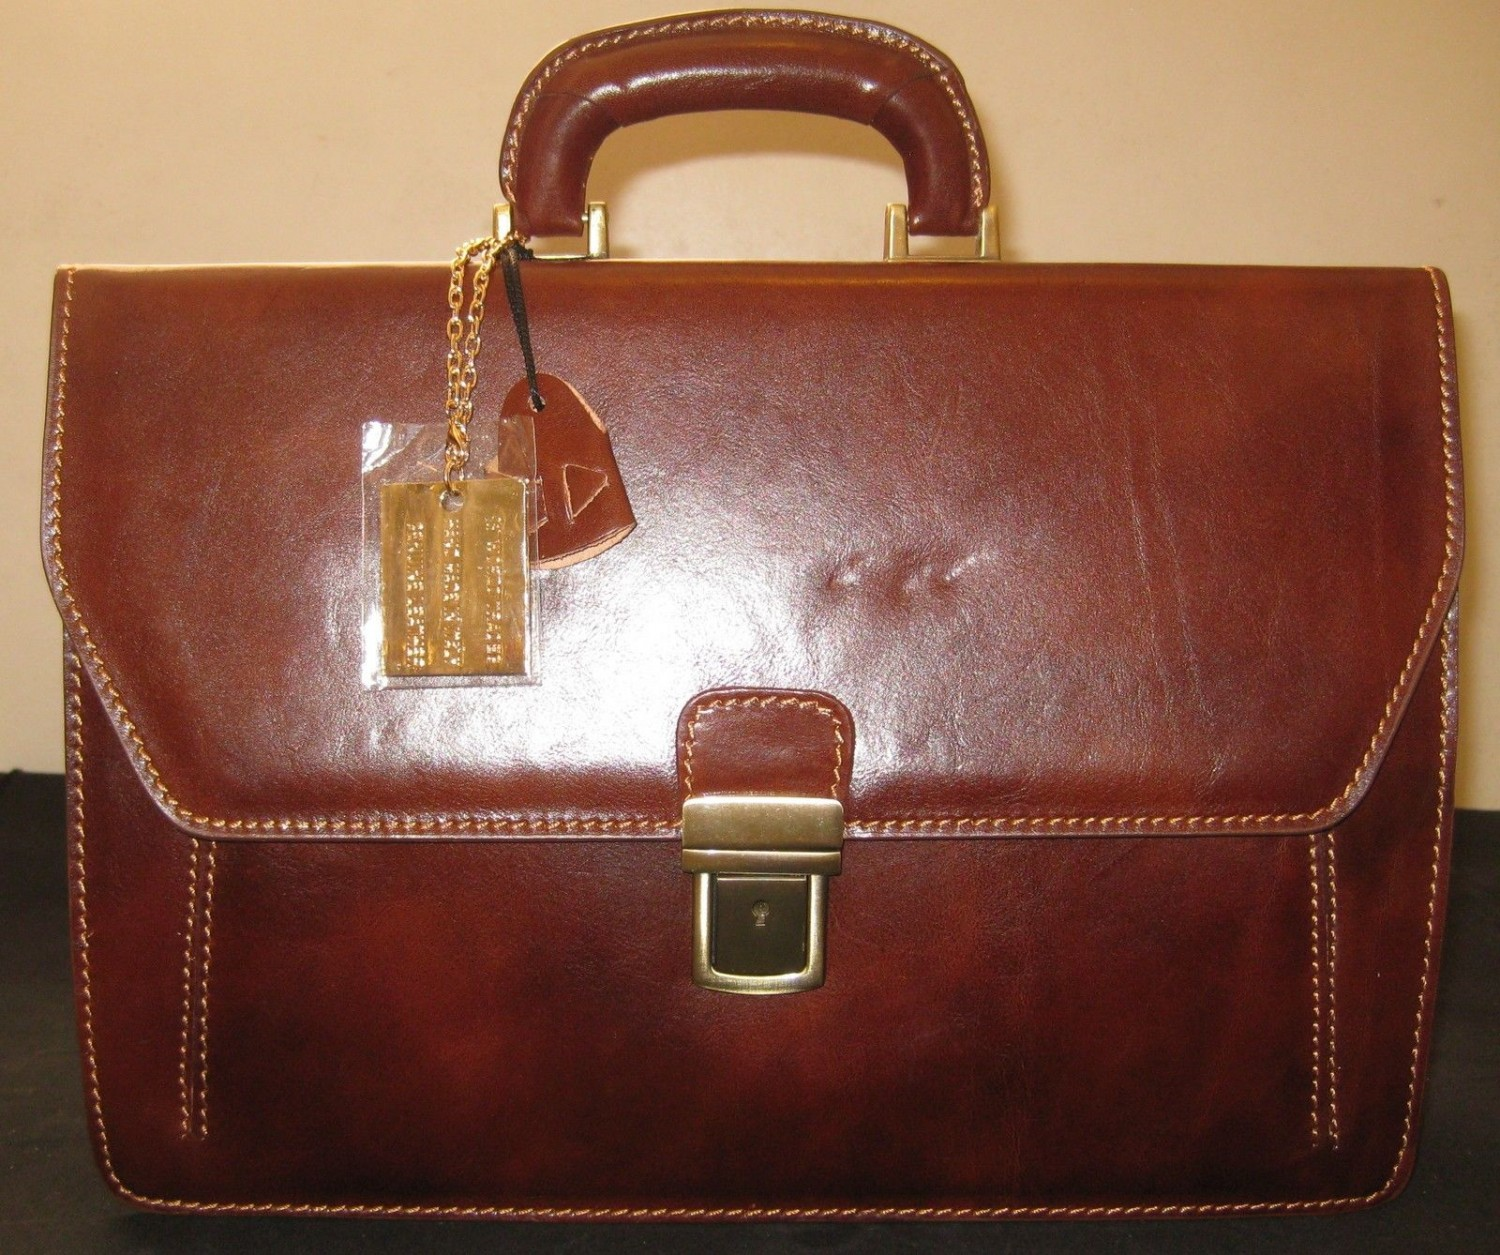 Italy Briefcase Leather- Romberg - Handmade In Tuscany- Brown Color.